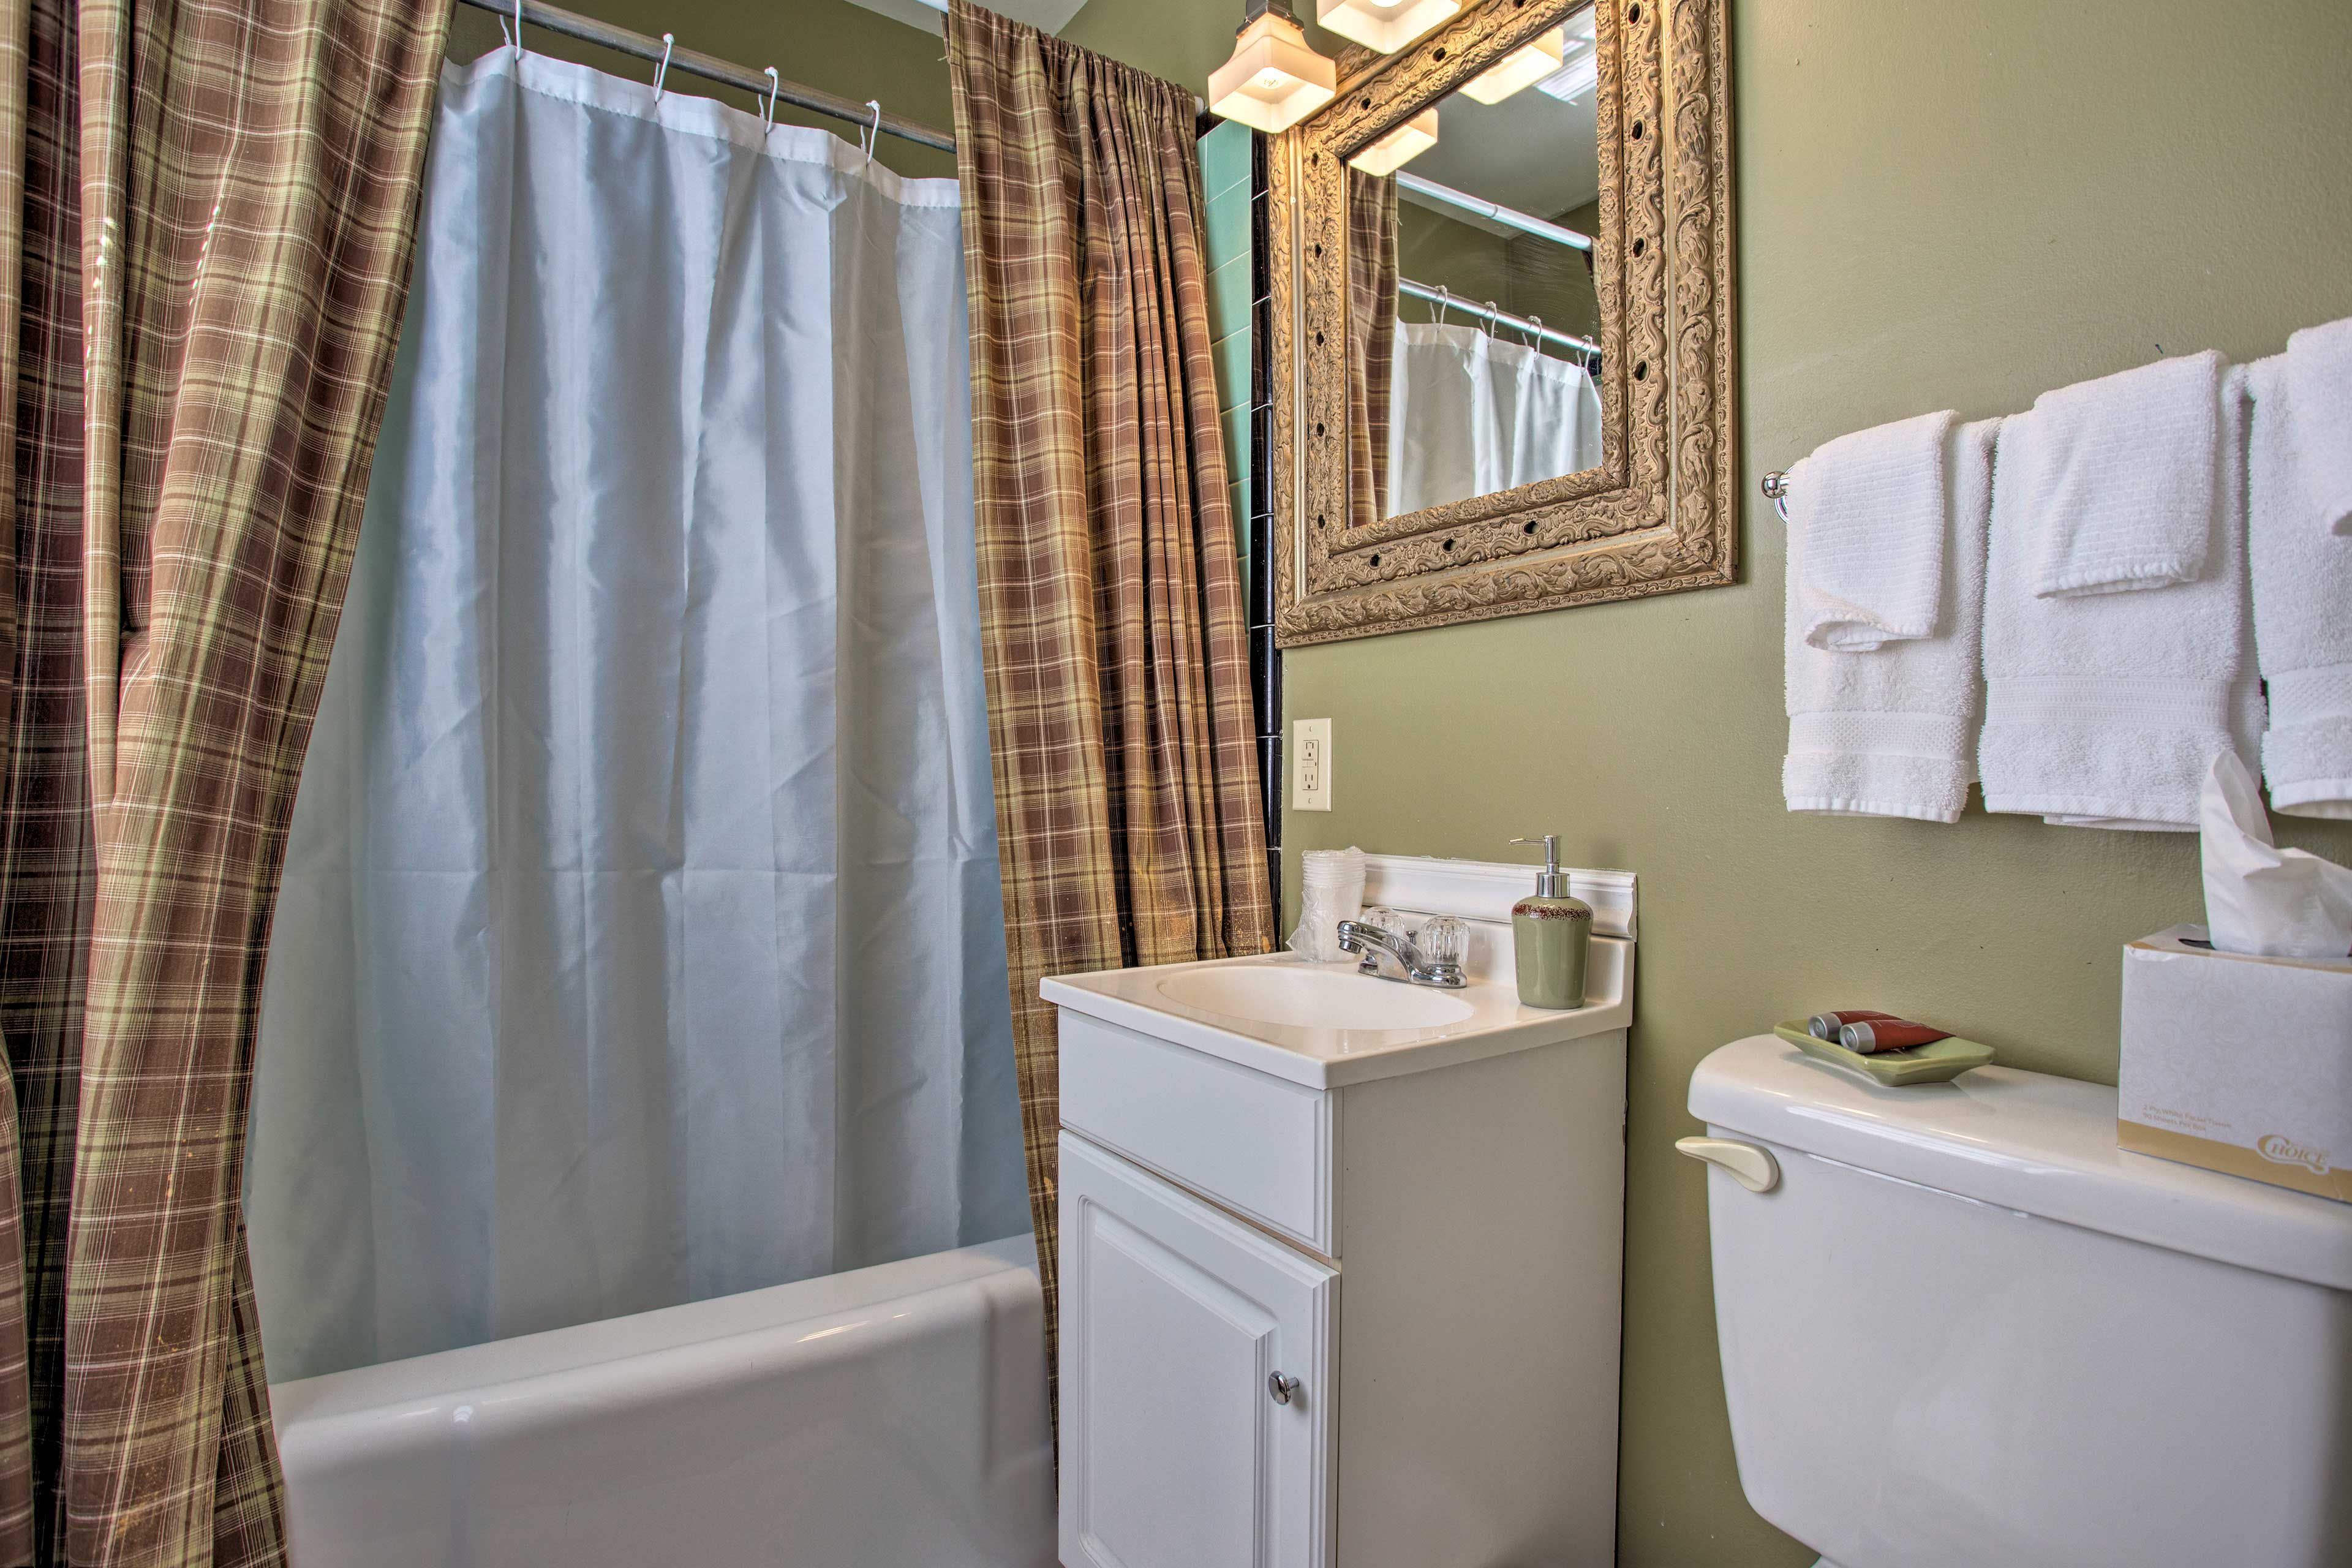 Soak in the bathtub after a long day exploring nearby state parks.